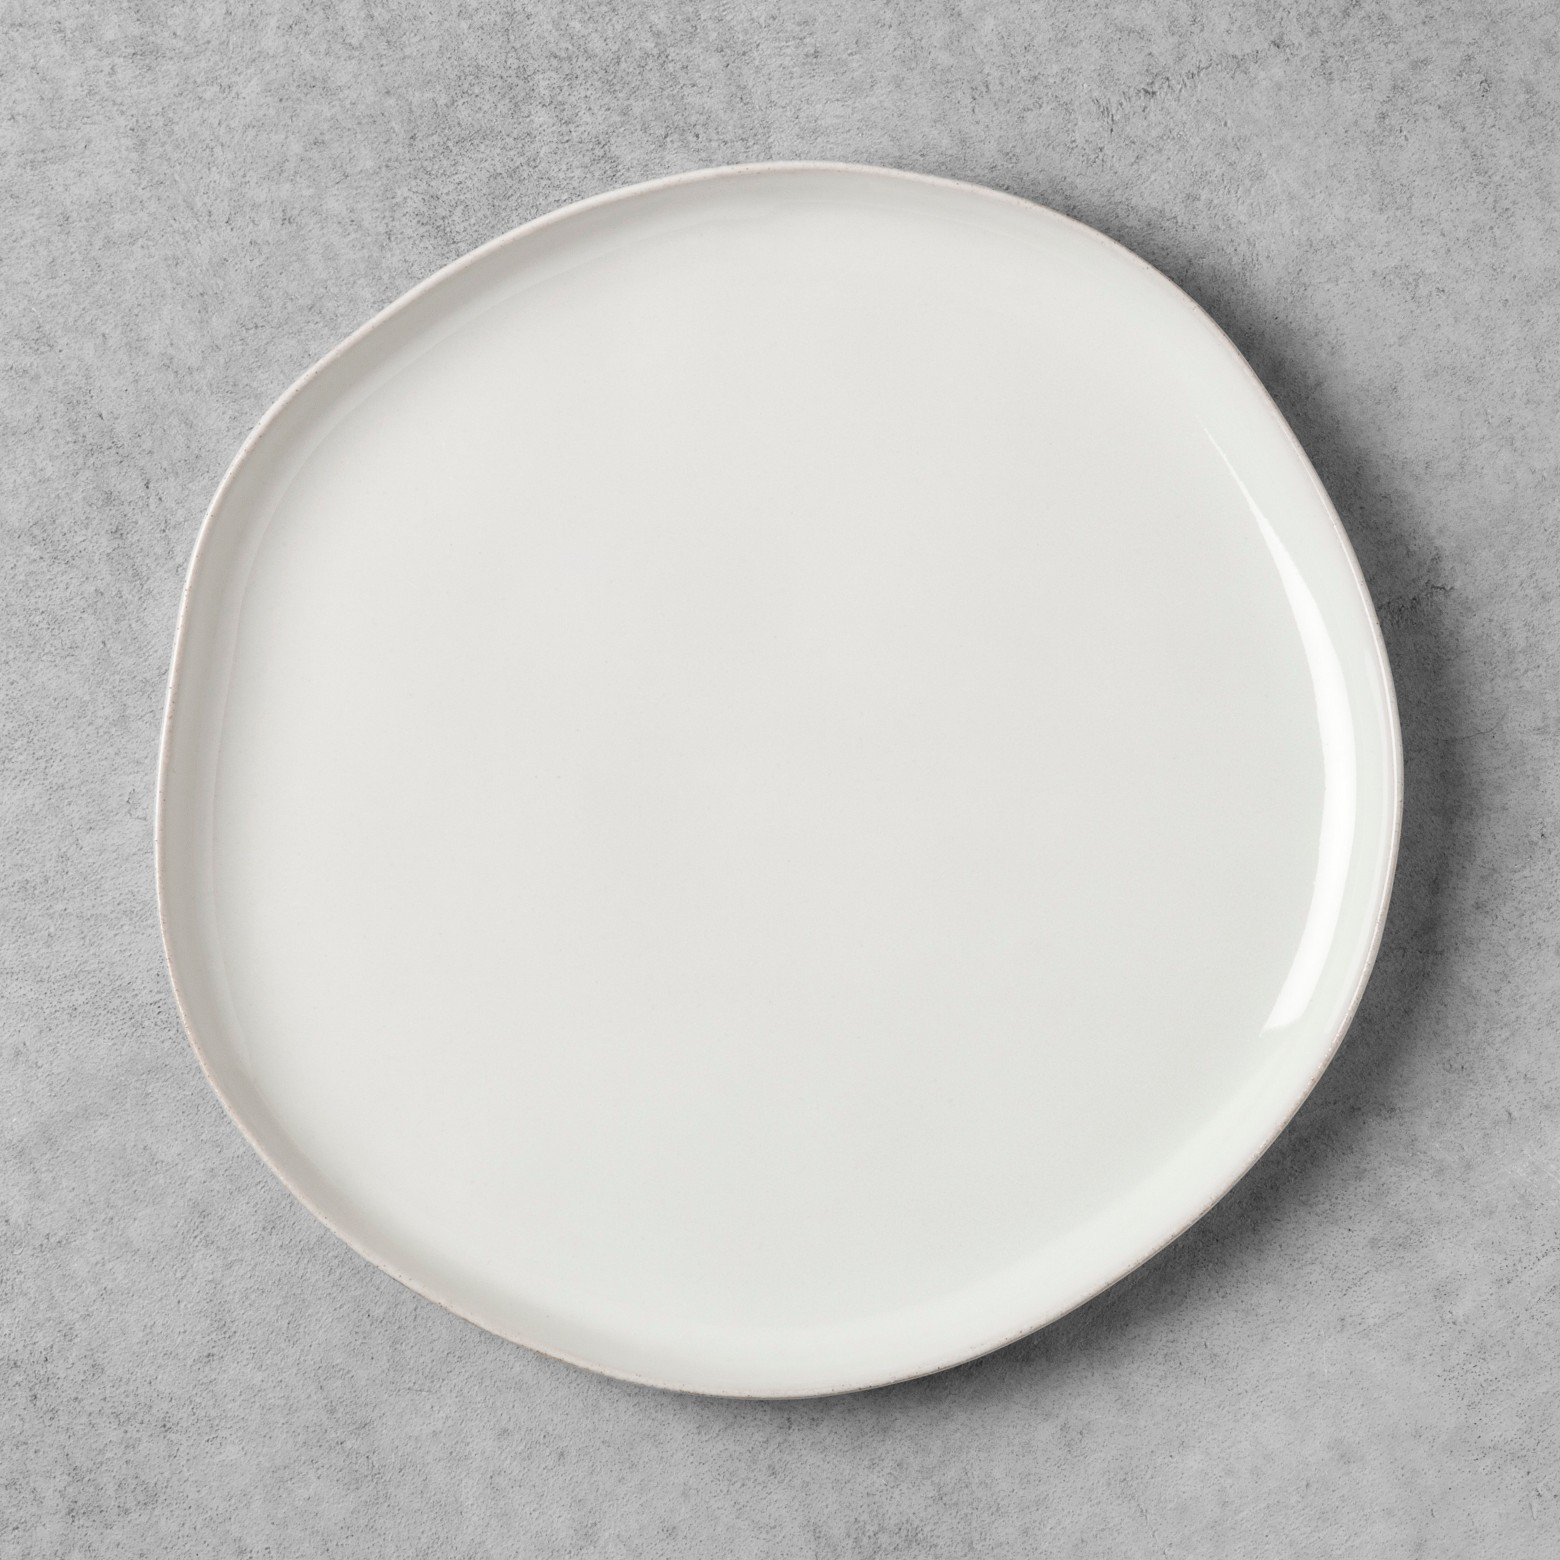 hearth and home white plate.jpg